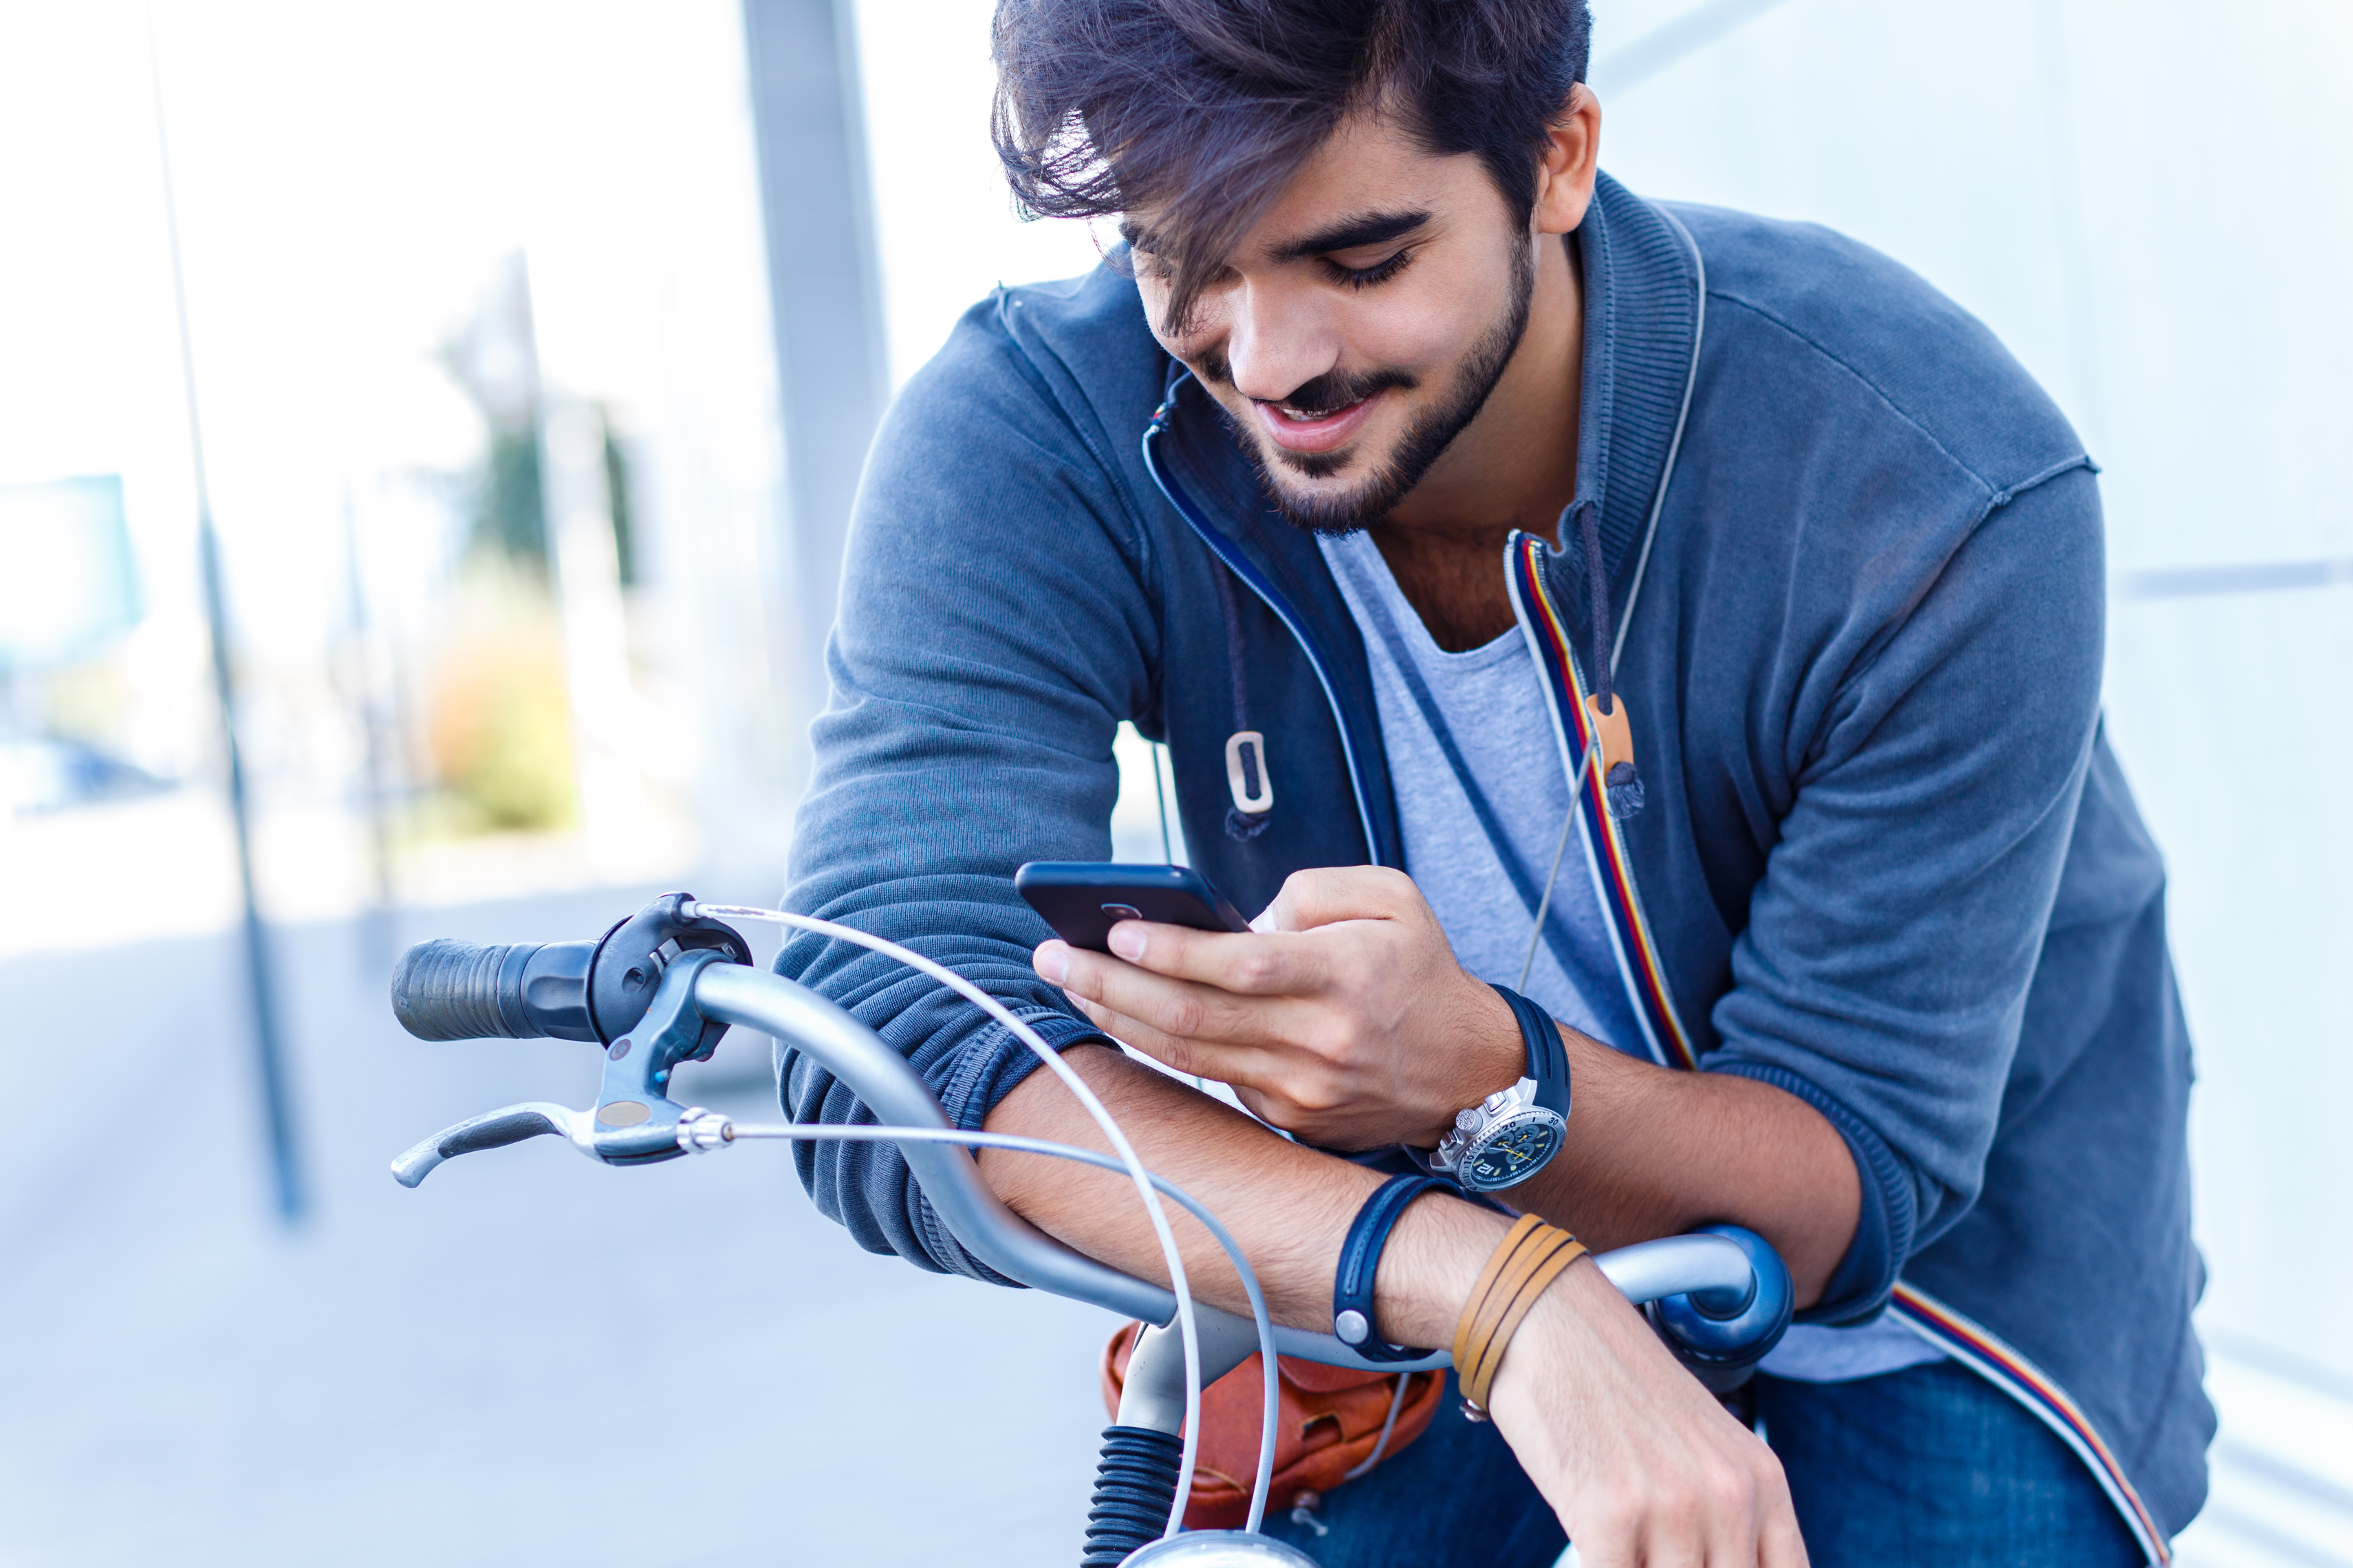 Young handsome guy on a bicycle looking at mobile phone.